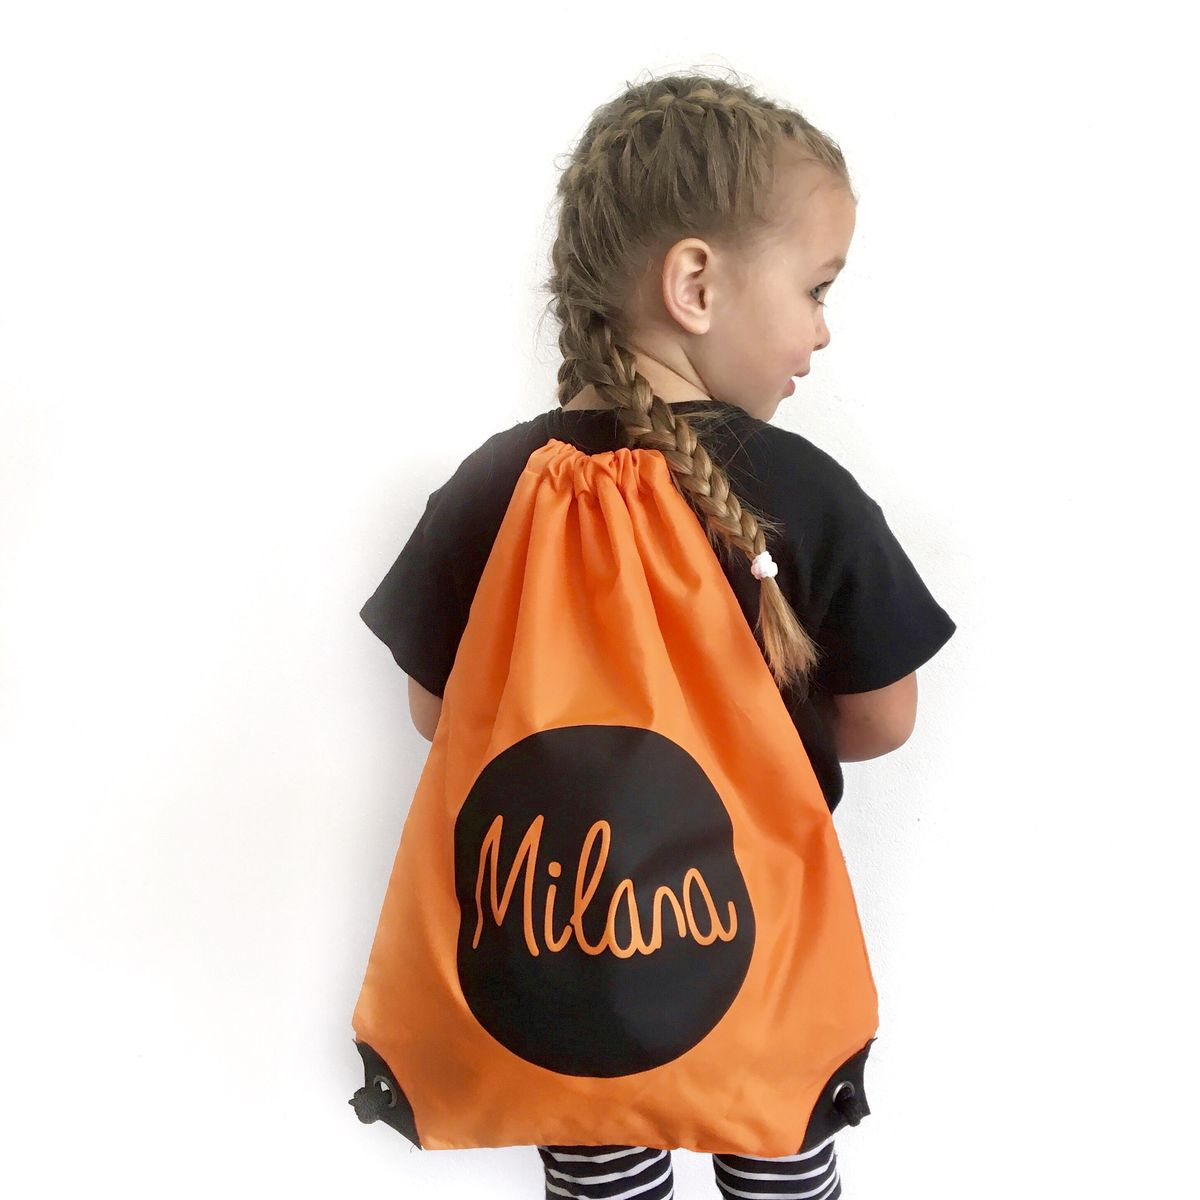 Name Drawstring Bag (Various Colours) - product images  of